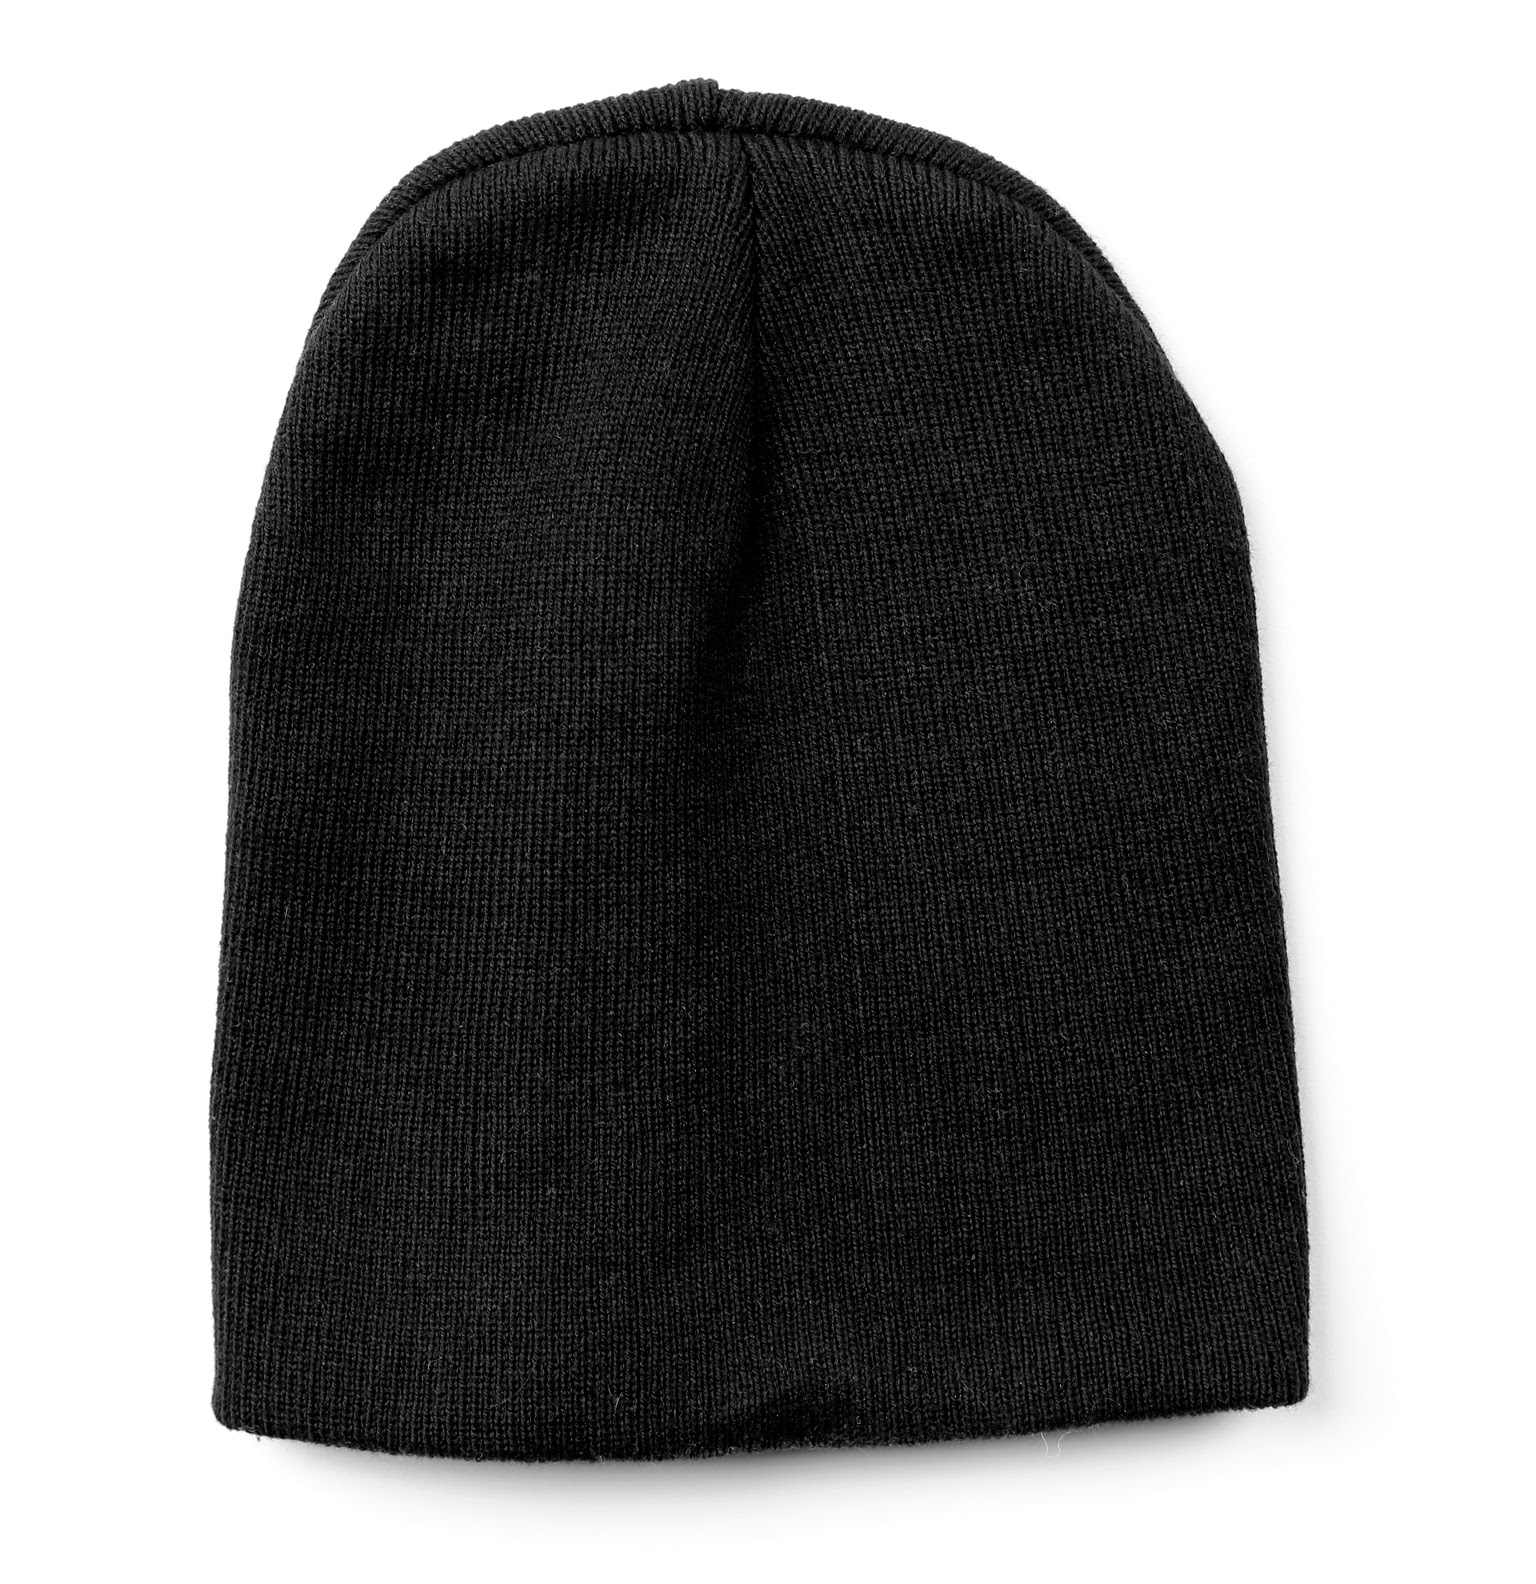 Daddy Waddy Weeviews  Black Skull Cap Beanie Review + Giveaway 2 16 2015 a6b3f223f24